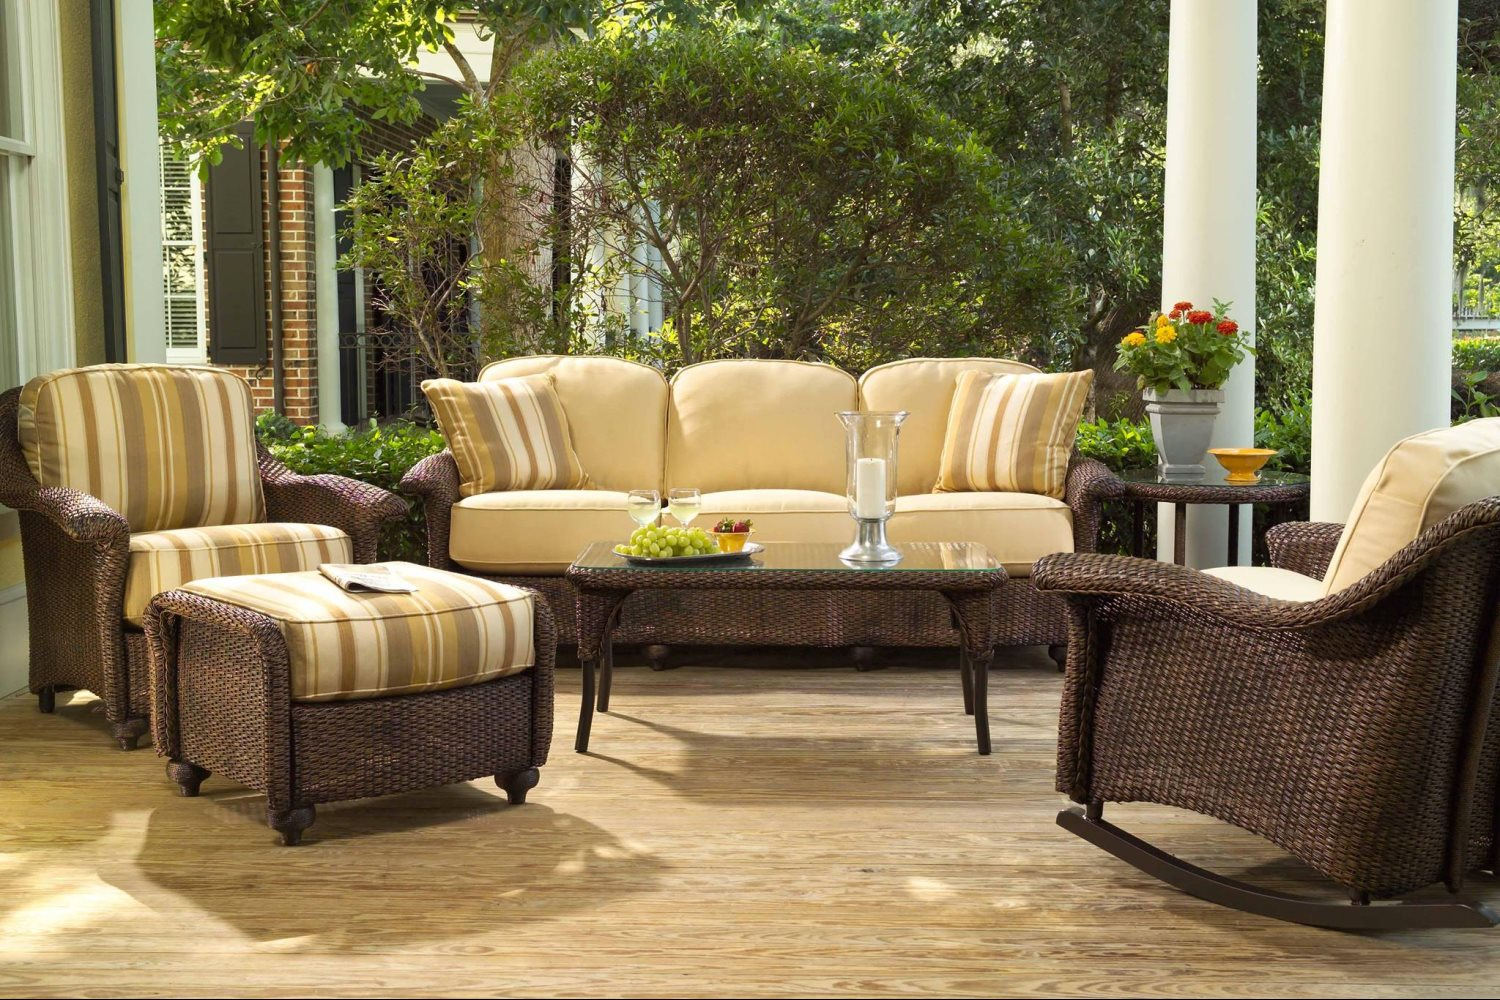 Patio furniture outdoor seating dining patio for Outdoor porch furniture